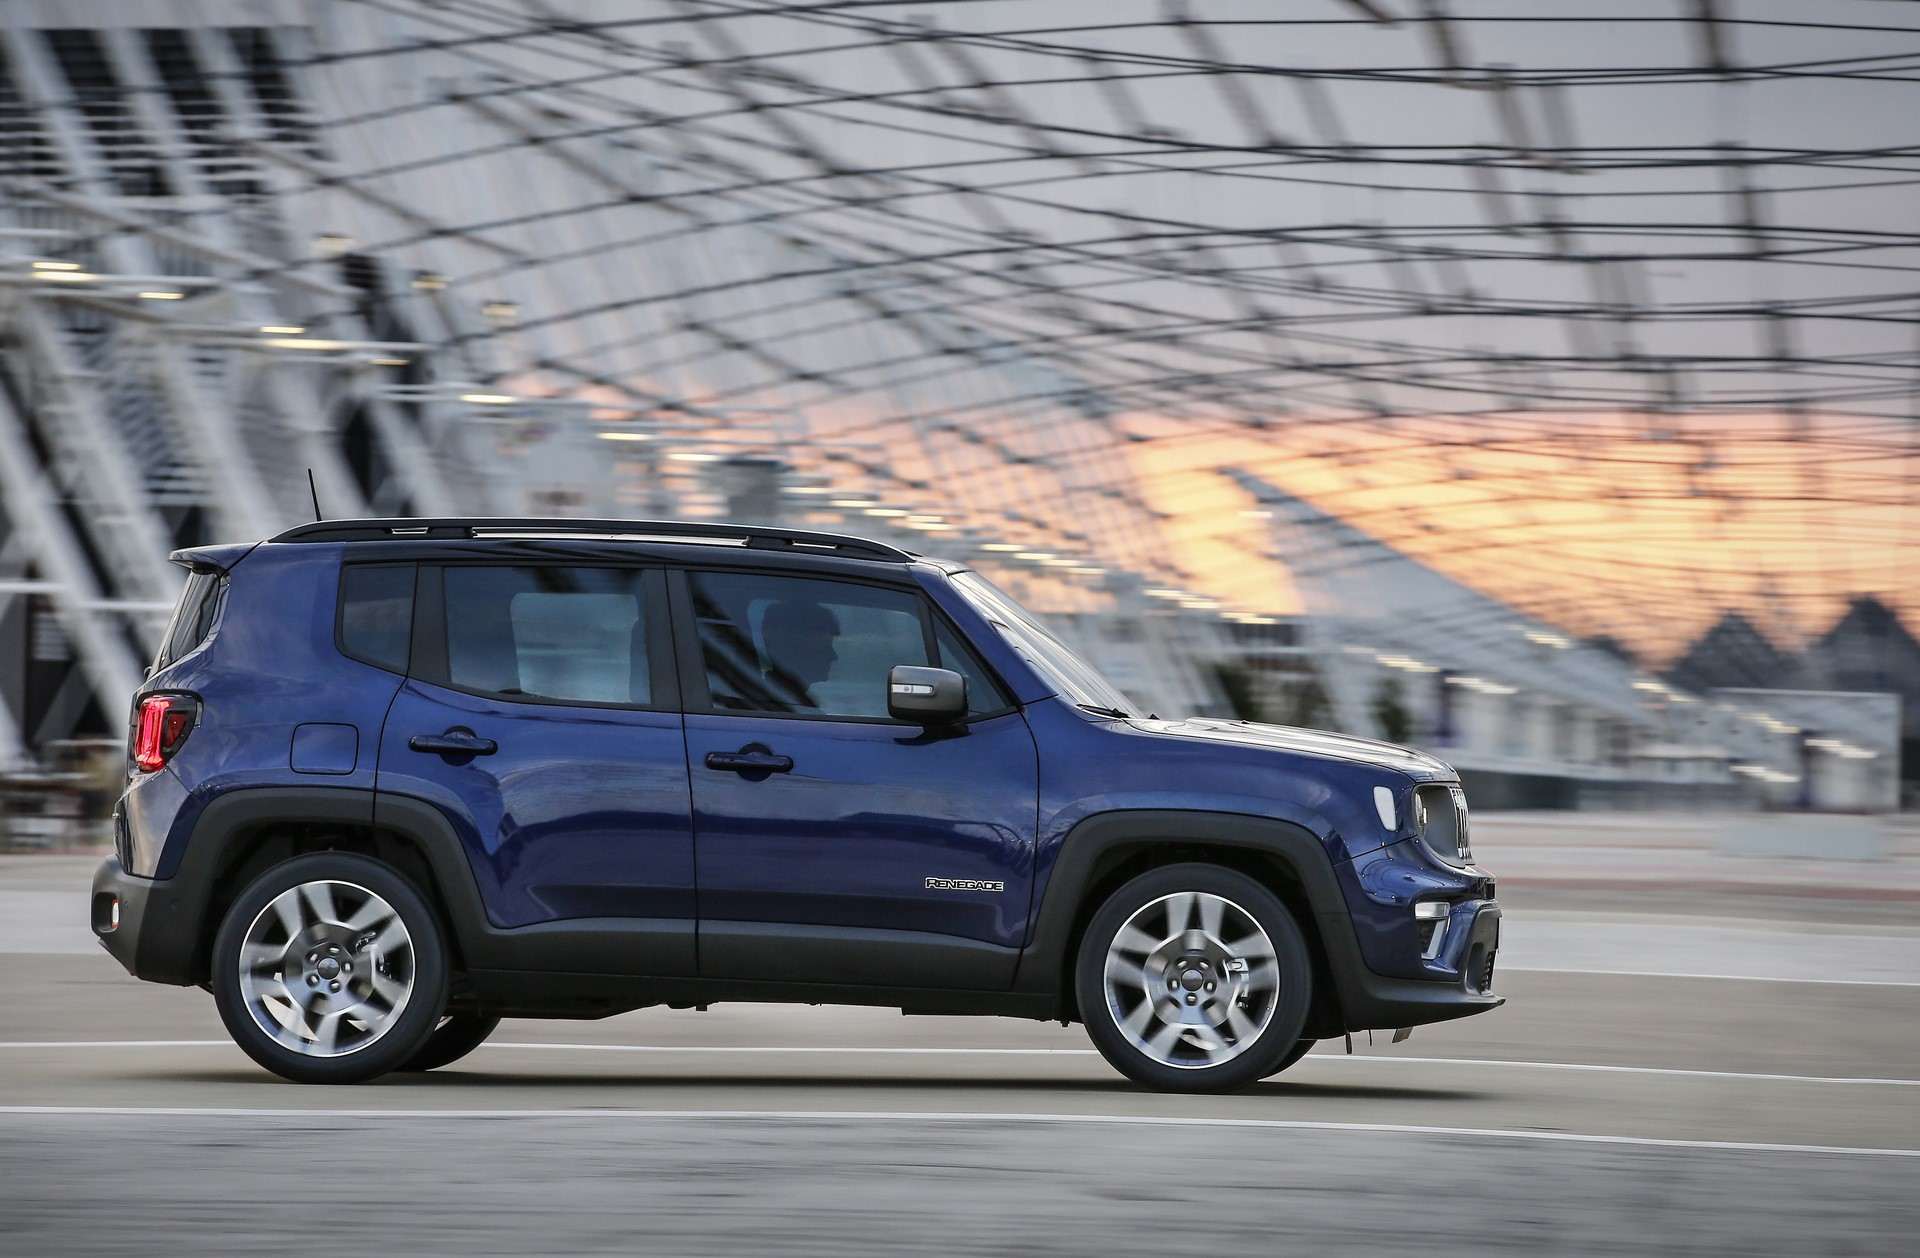 Jeep Renegade facelift 2019 (12)